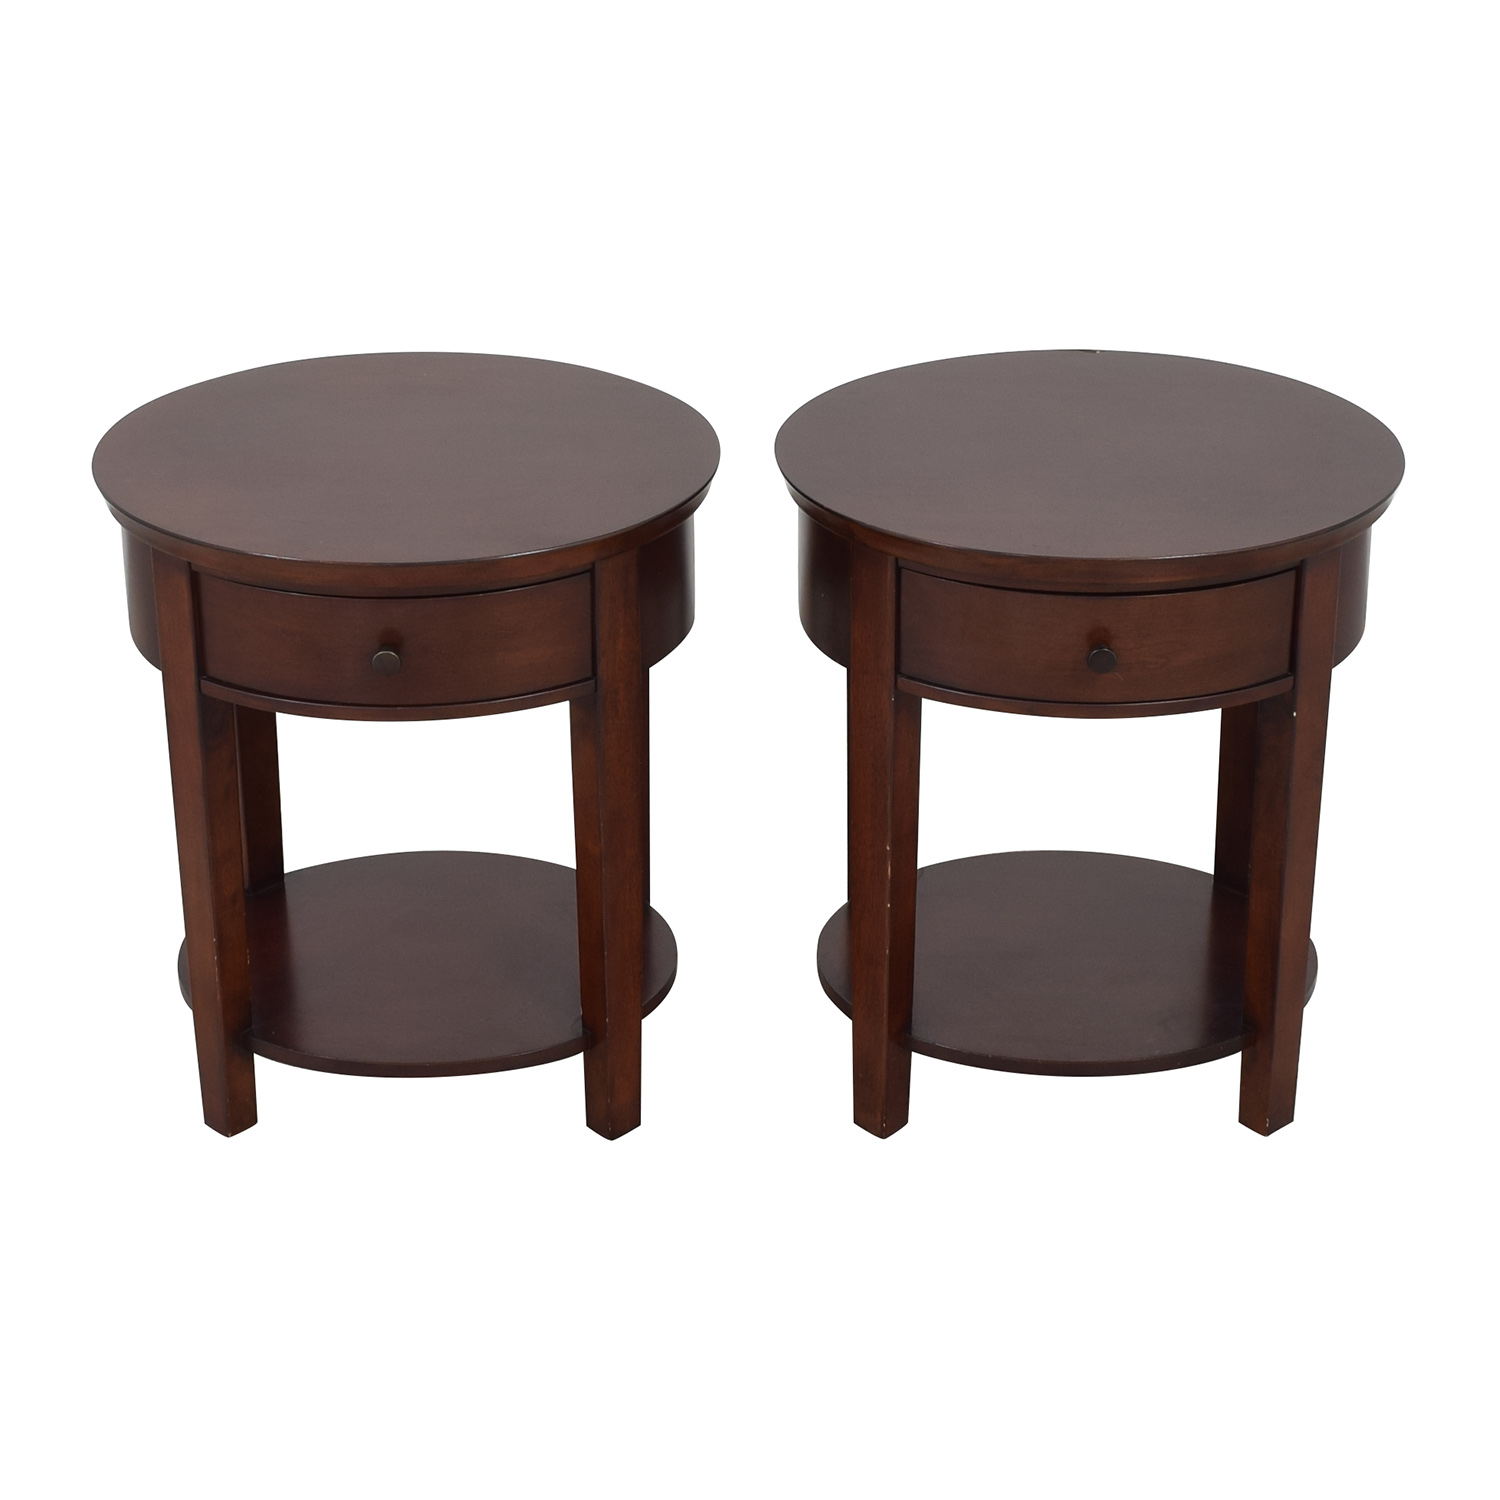 Pottery Barn Pottery Barn Valencia Oval Bedside Tables dimensions